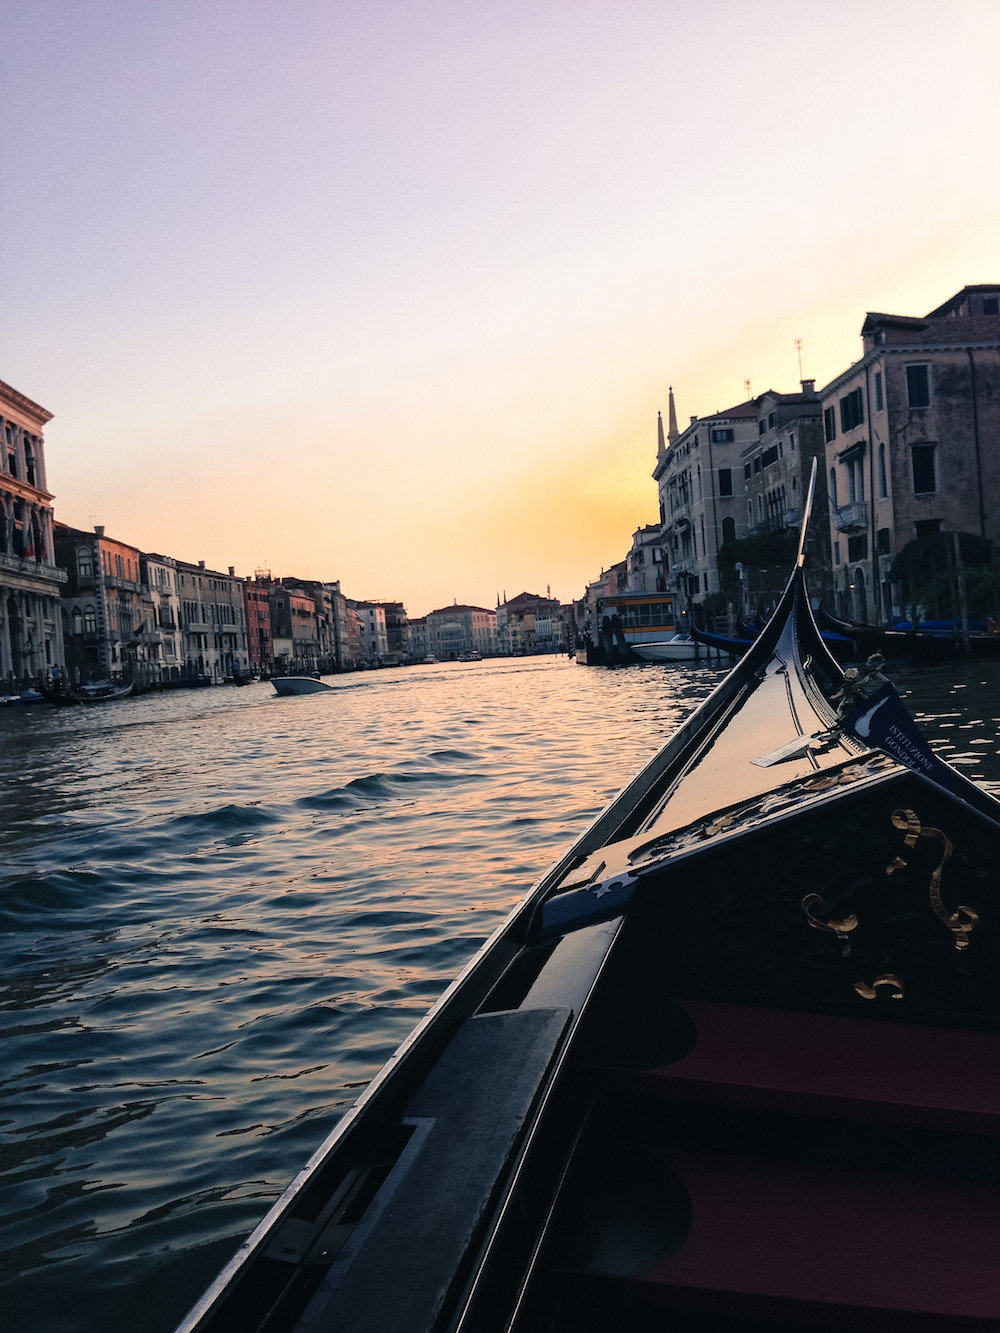 Gondola ride in Venice (Eat Me. Drink Me.)